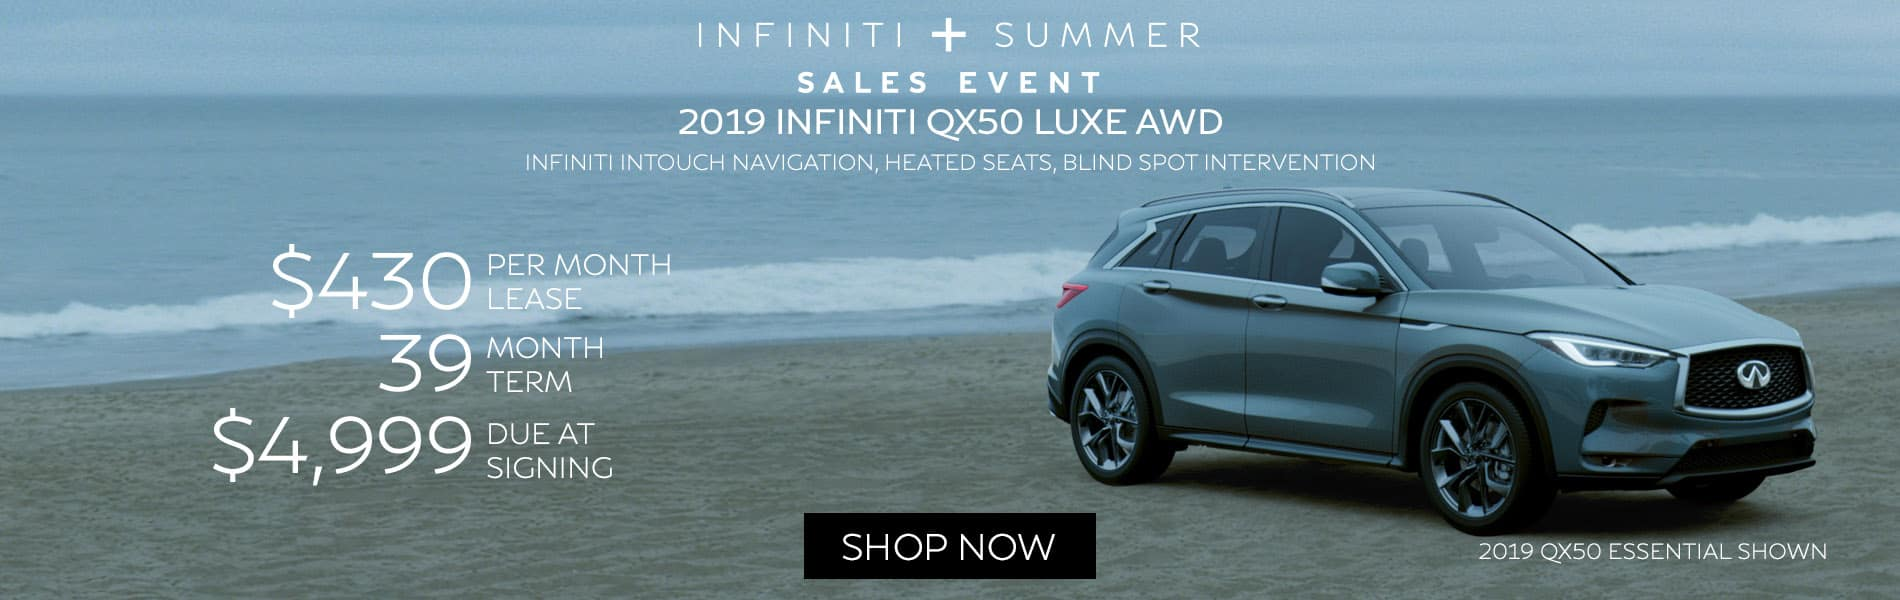 Lease a 2019 QX50 LUXE AWD for $430 per month with $4,999 due at signing